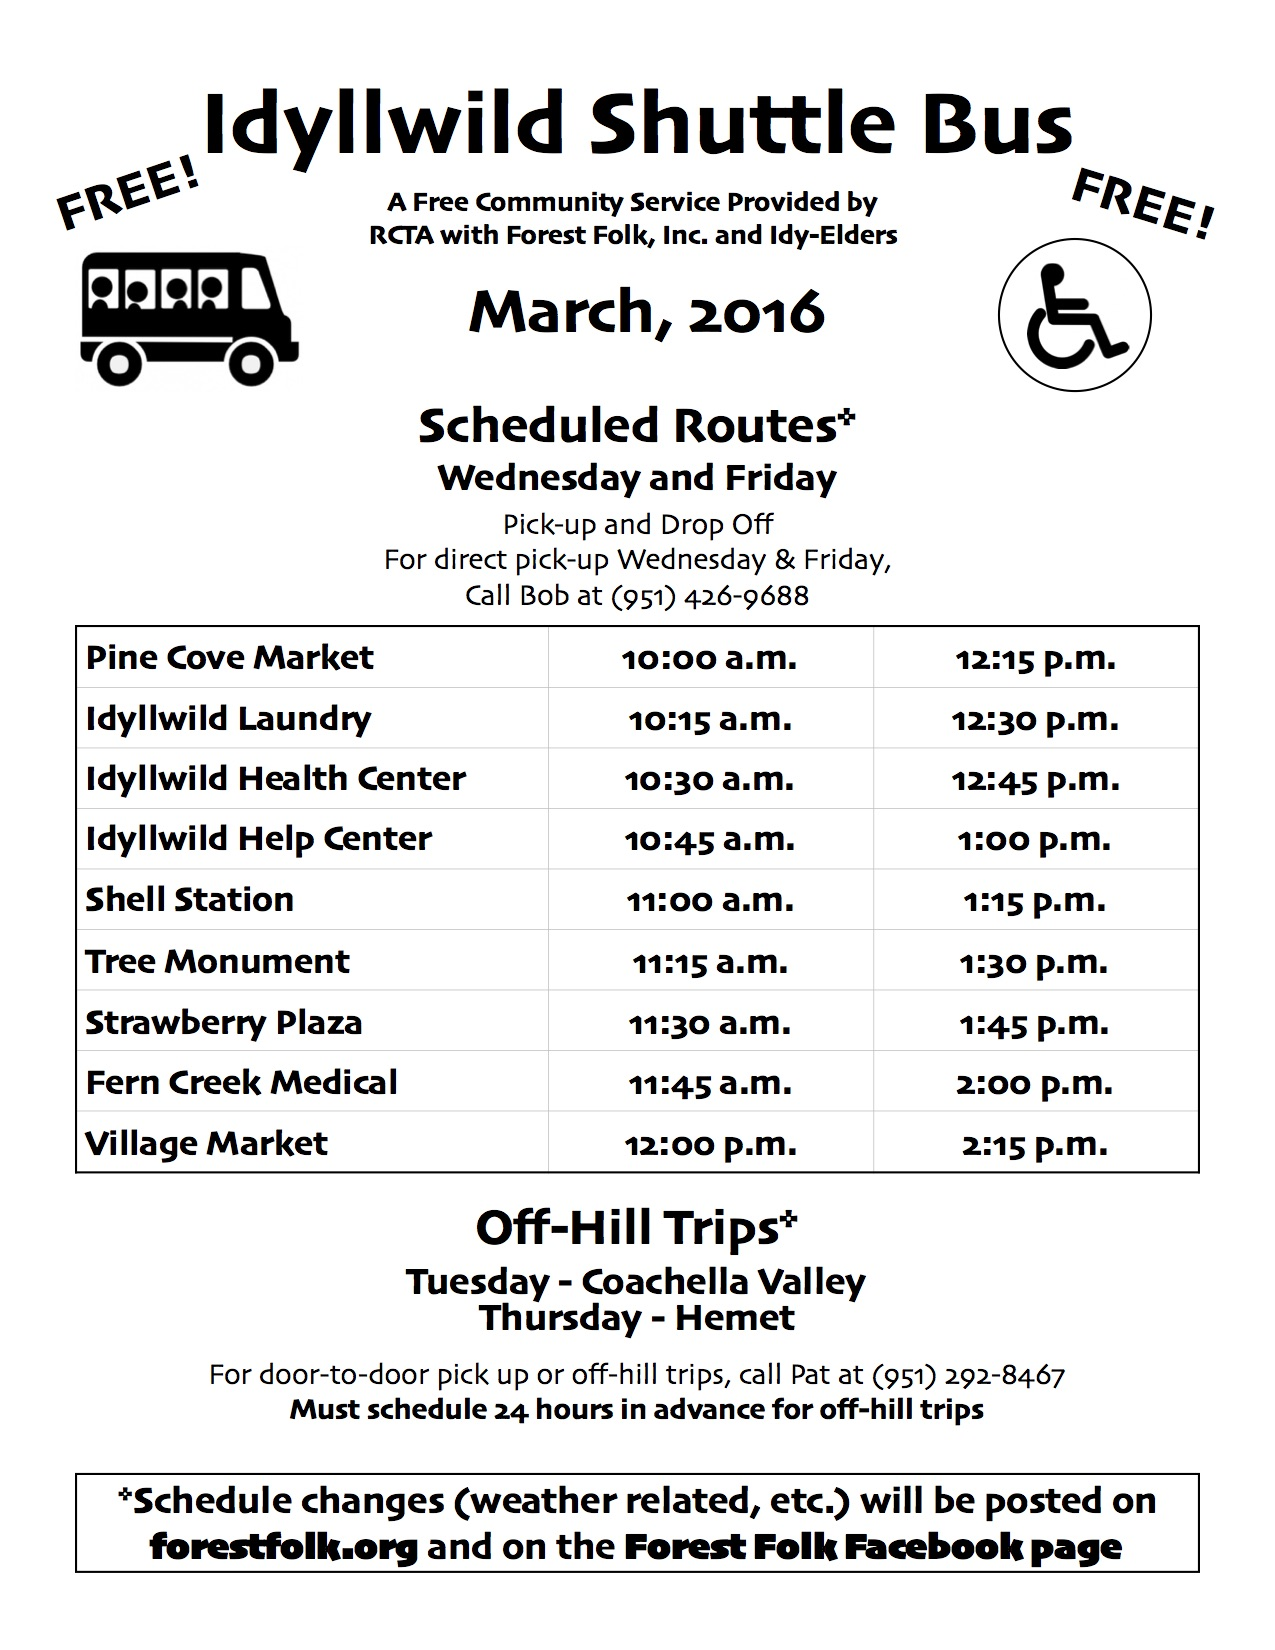 shuttle bus schedule View our tradeshow's shuttle bus schedule and when you can expect to be picked up.